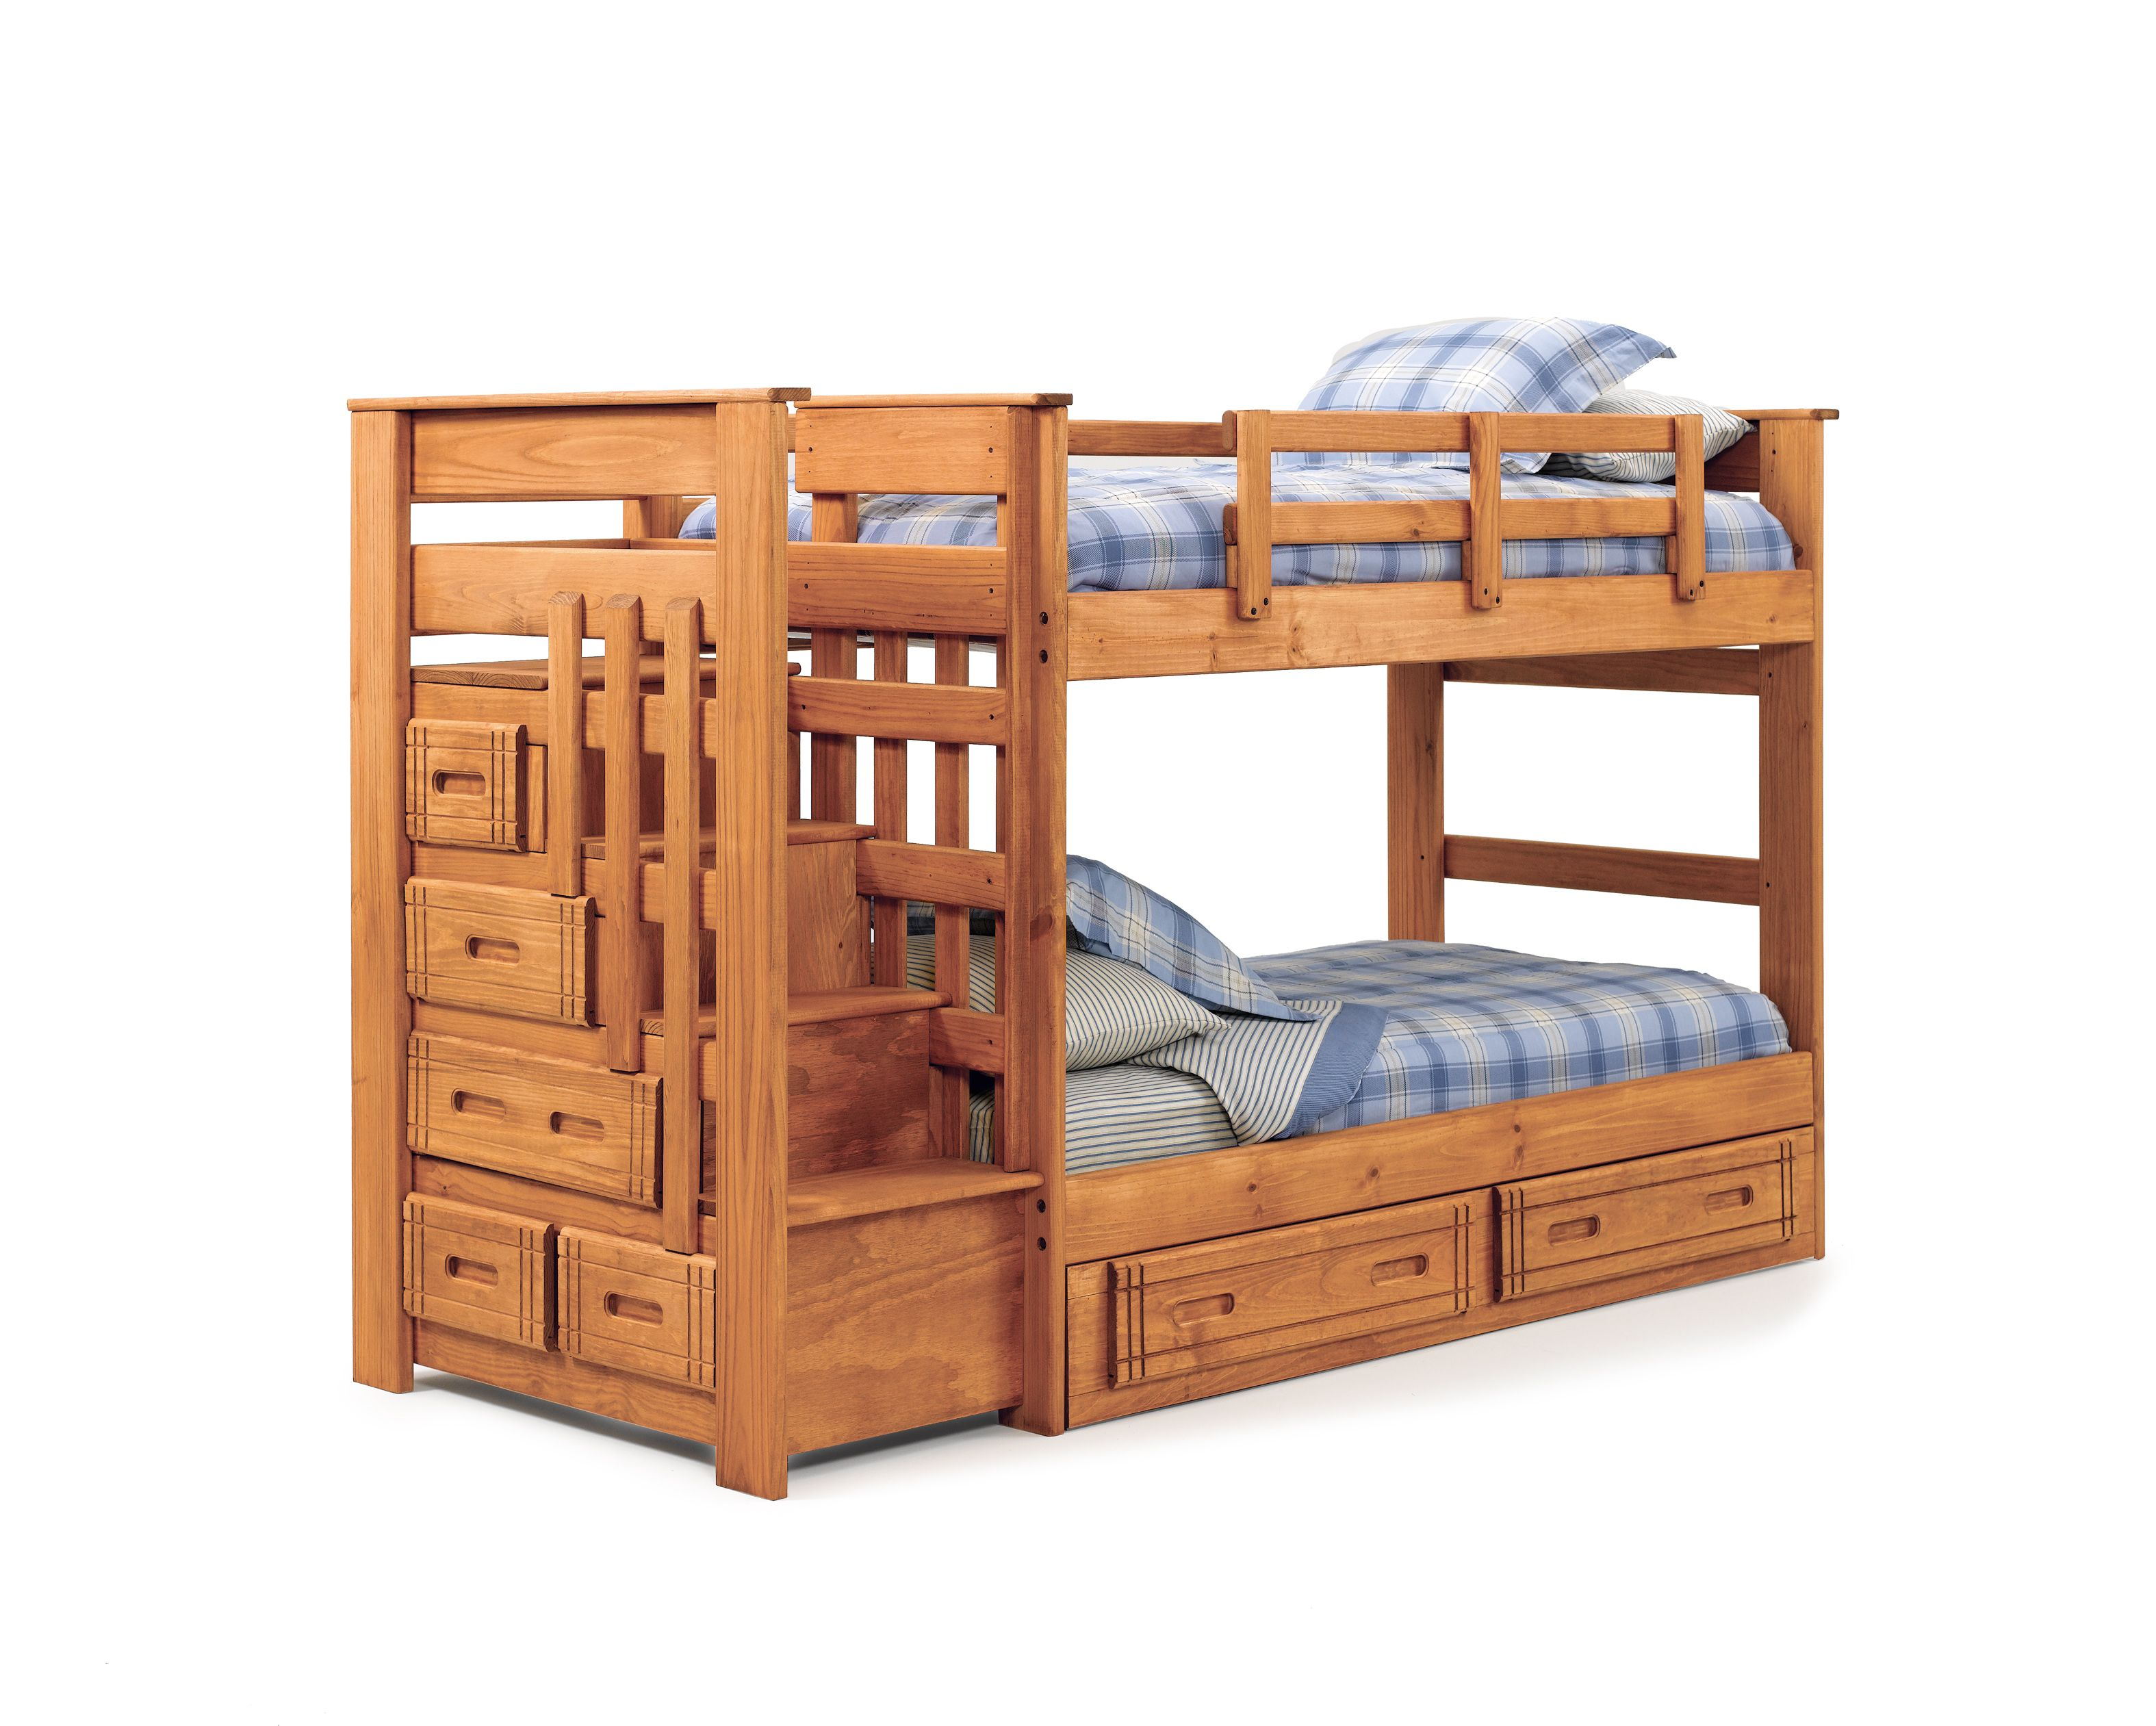 Bunk Beds With Stairs With Drawers Design Idea Bunk Bed Bunk